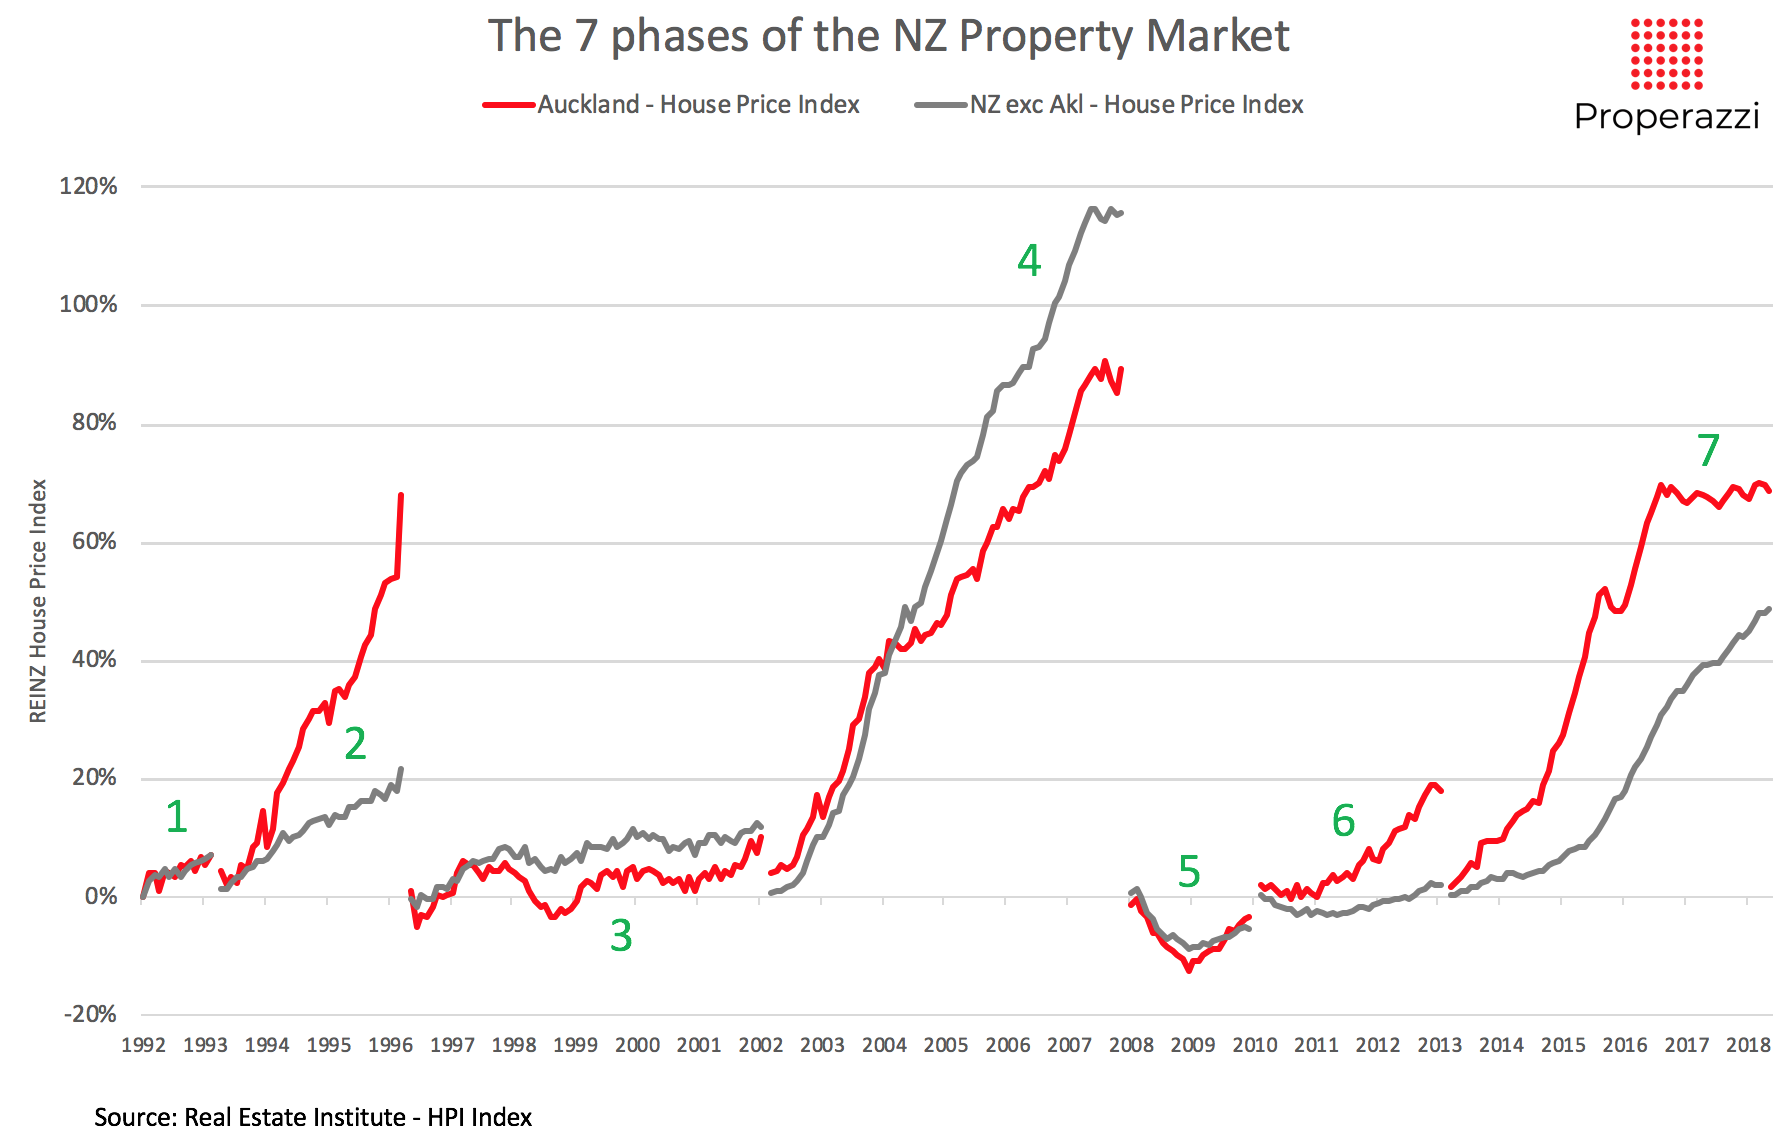 Analysis_of_NZ___Akl_pricing_since_1992_HPI___Median.png